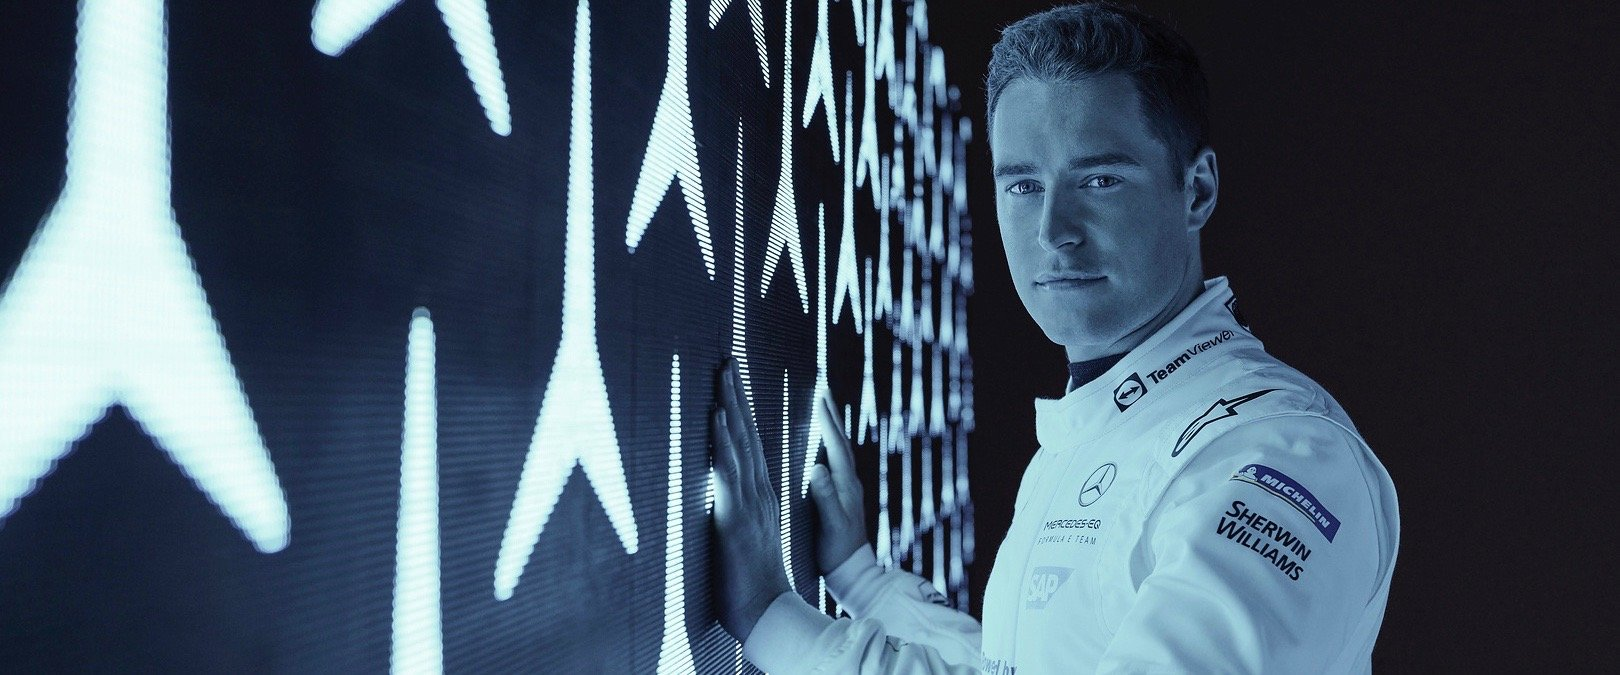 Stoffel Vandoorne in front of a white wall with crossed arms